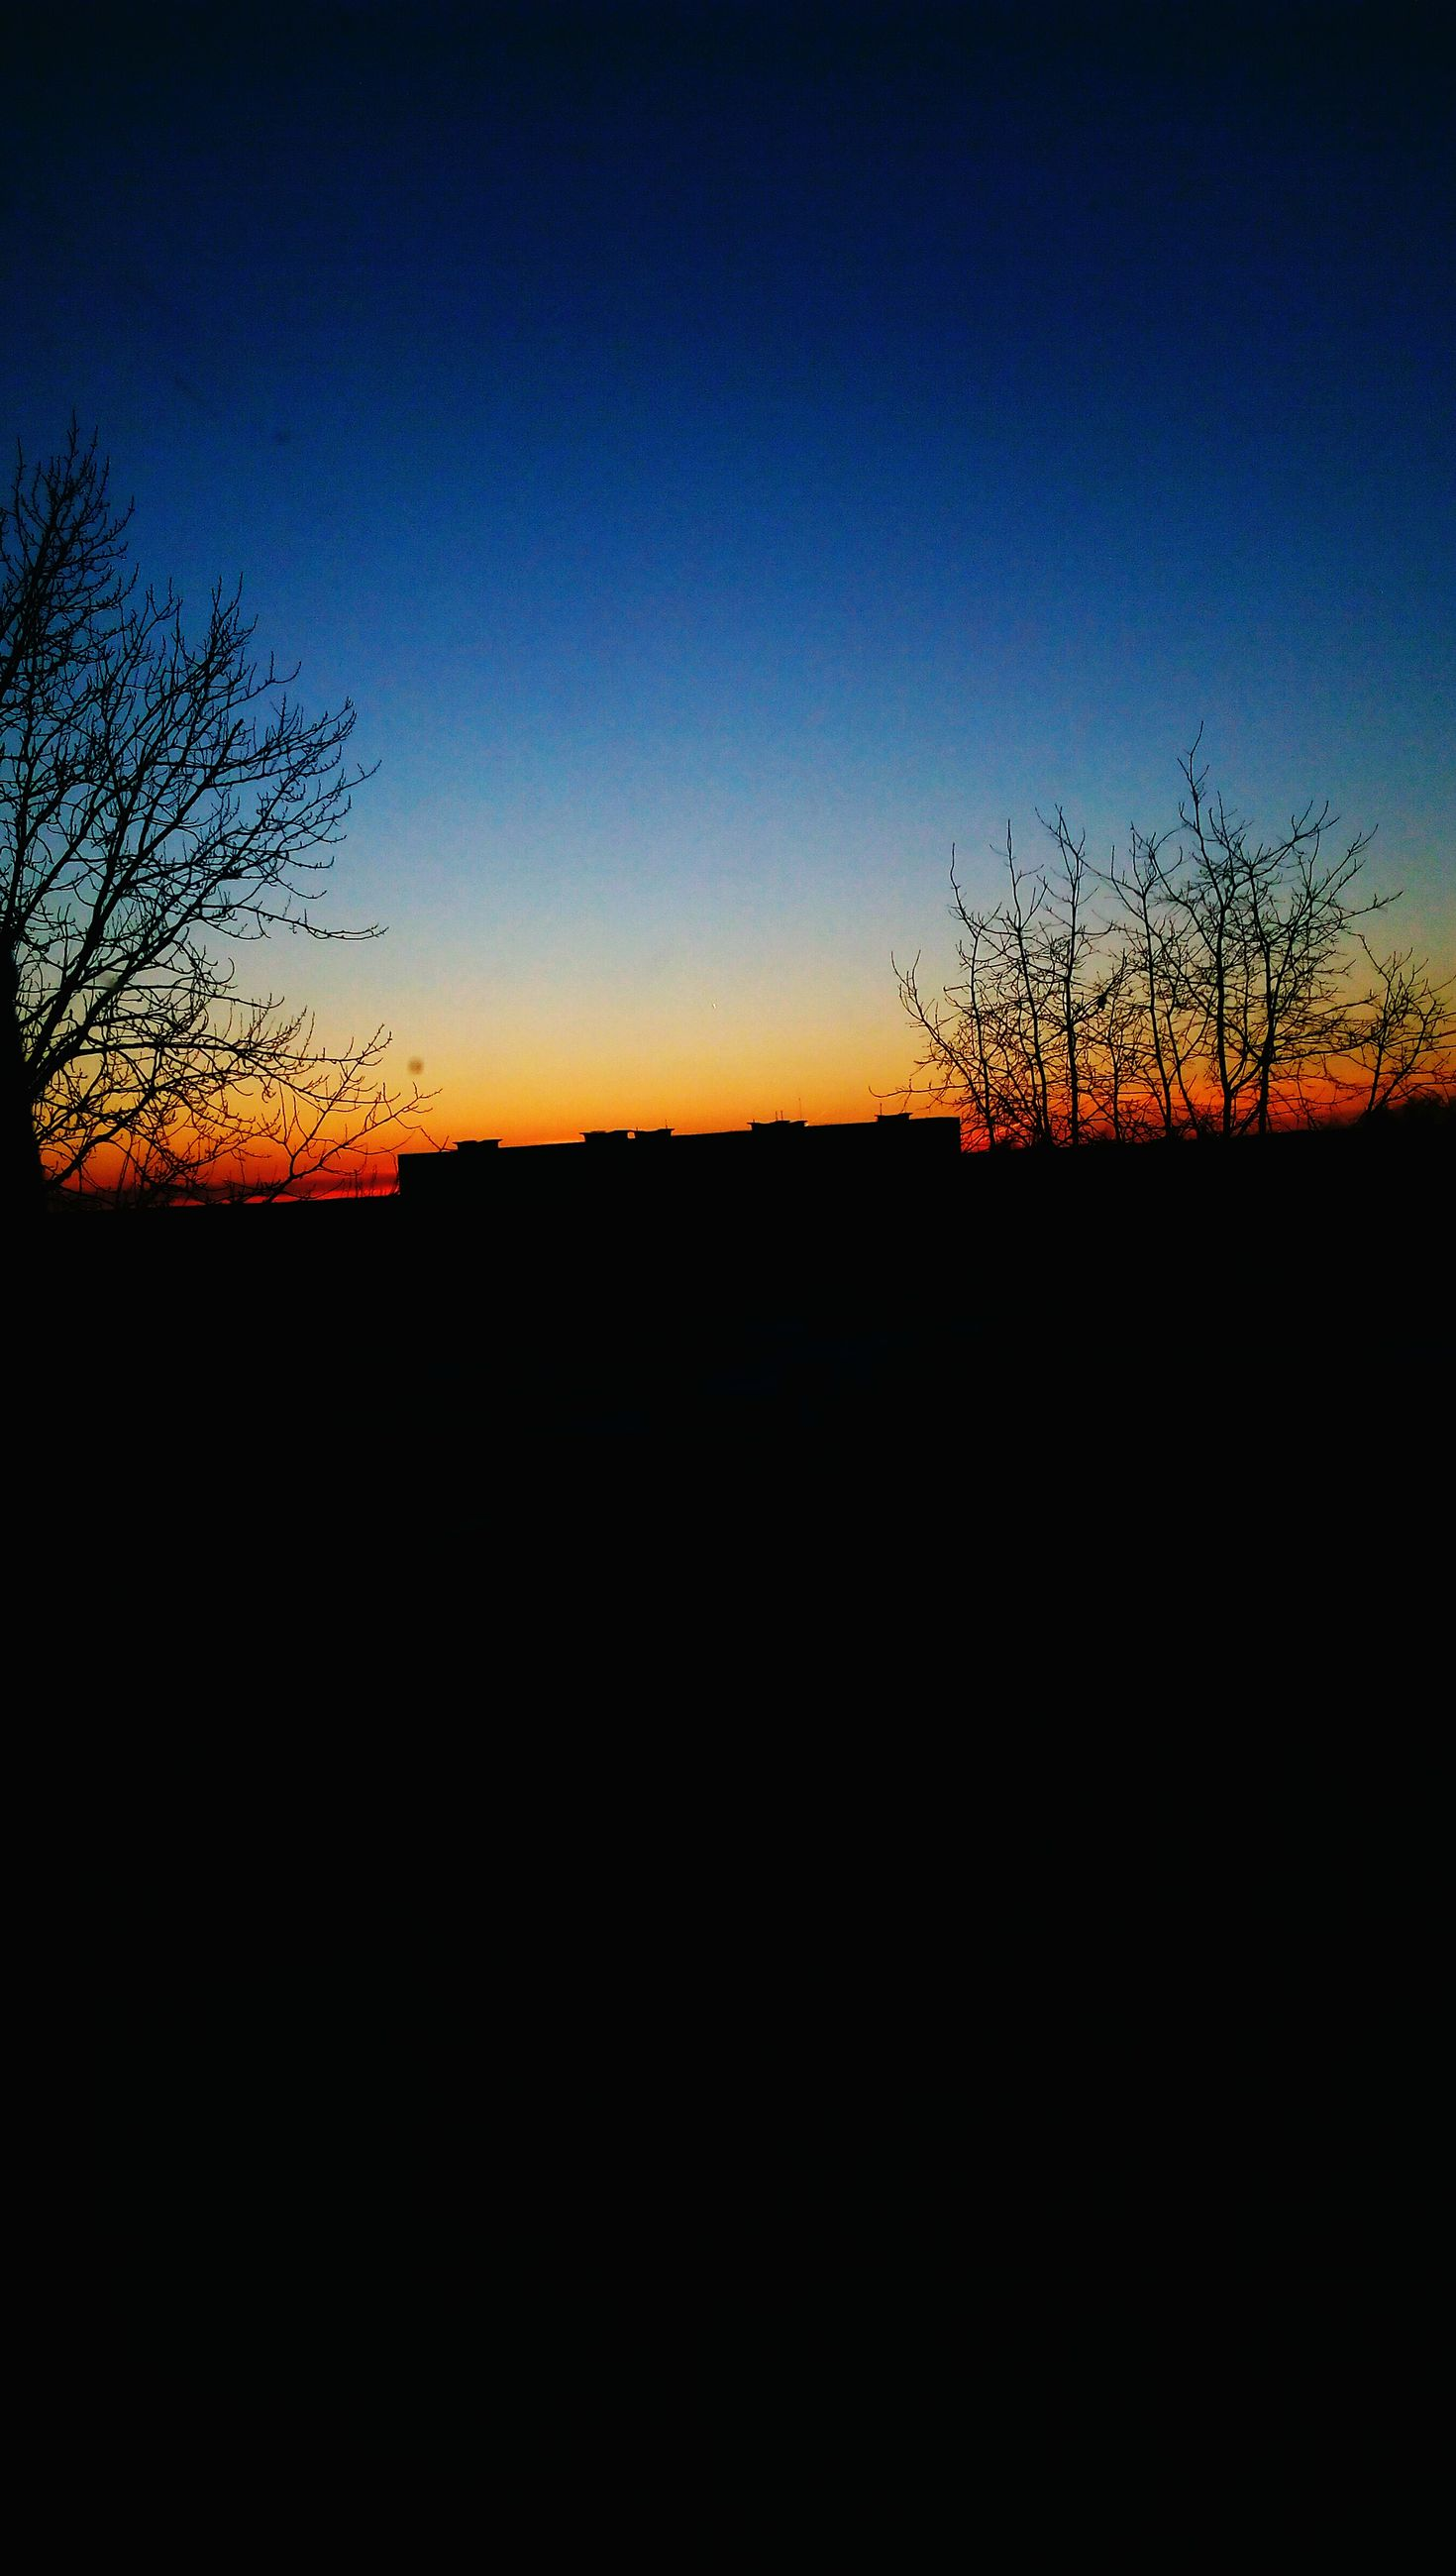 sunset, silhouette, nature, sky, beauty in nature, orange color, tree, tranquility, no people, scenics, dramatic sky, outdoors